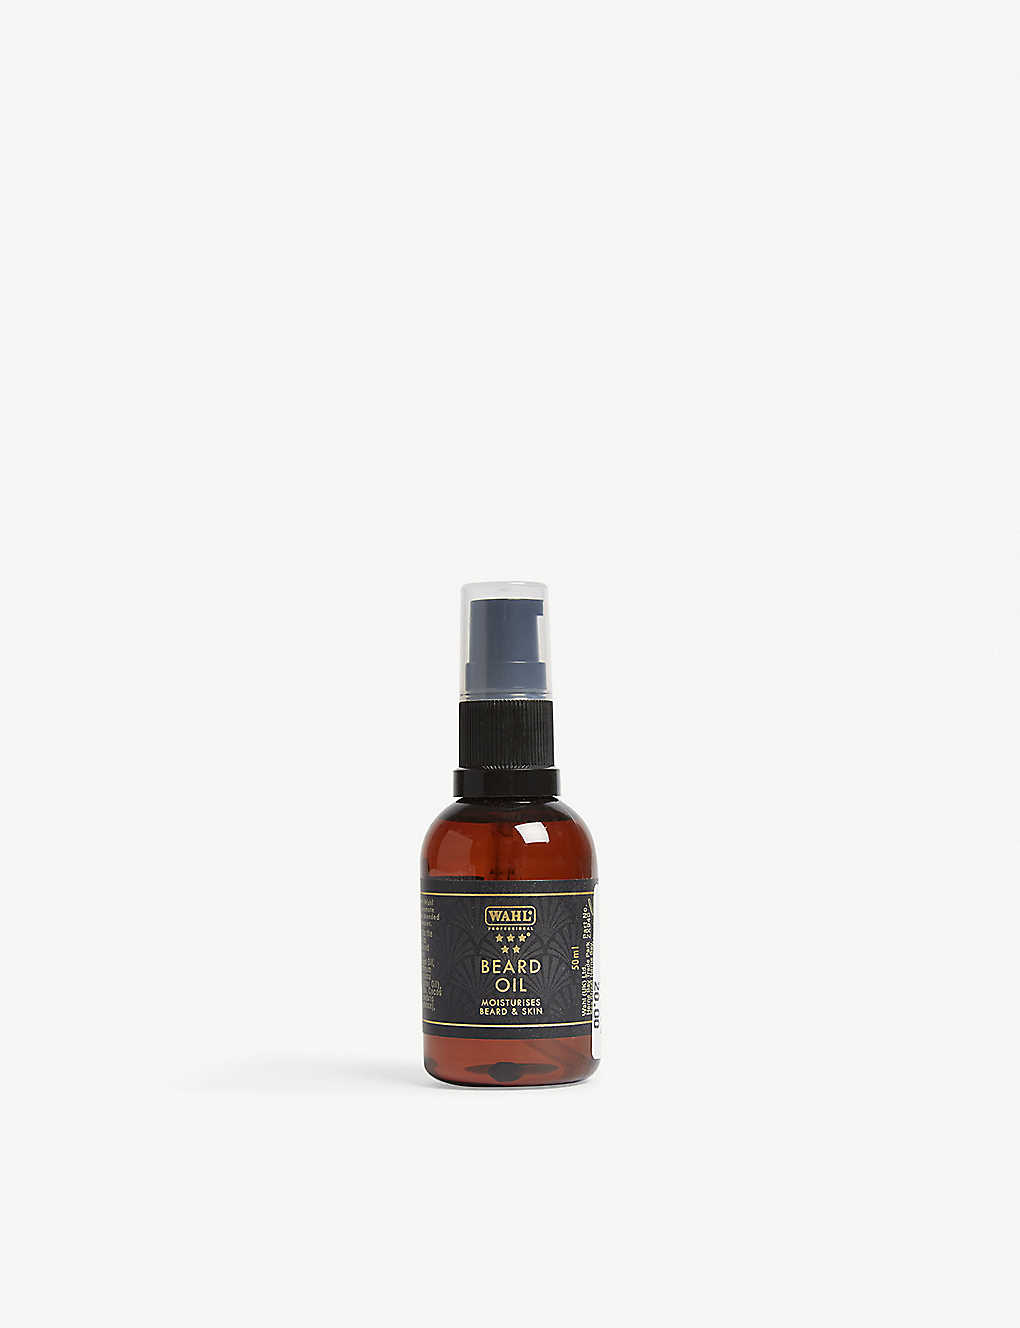 WAHL: 5 Star beard oil 50ml